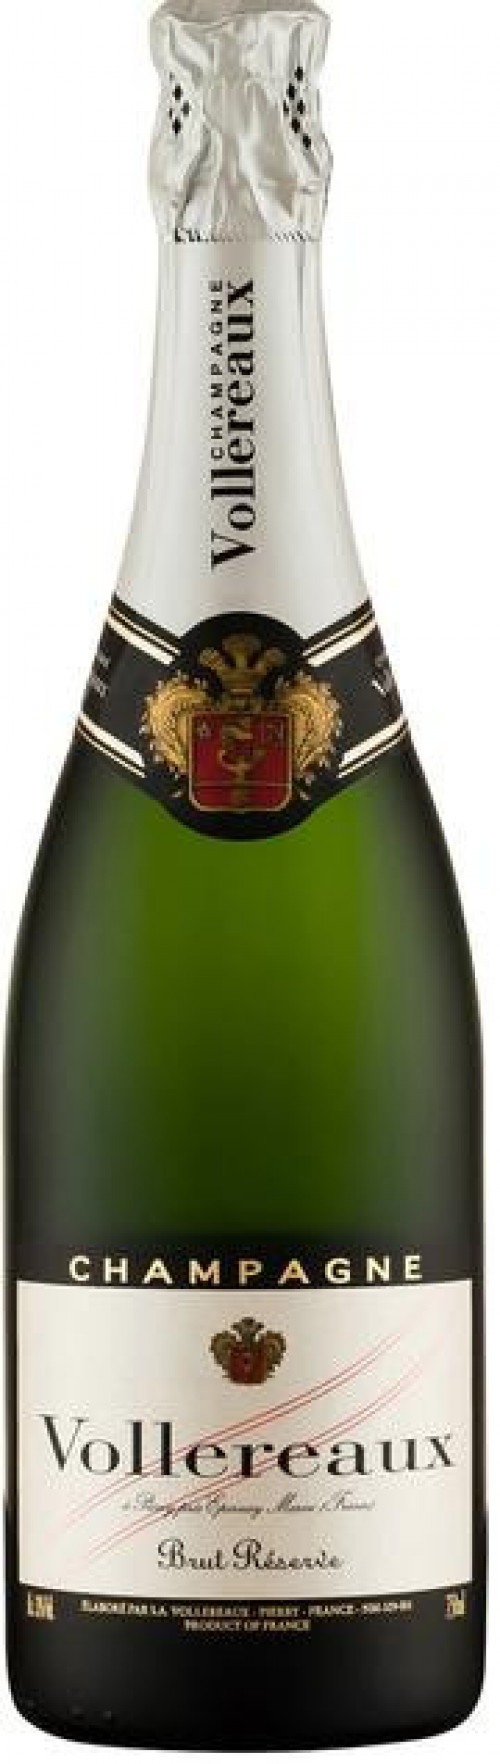 Vollereaux Brut Reserve Champagne 750ml